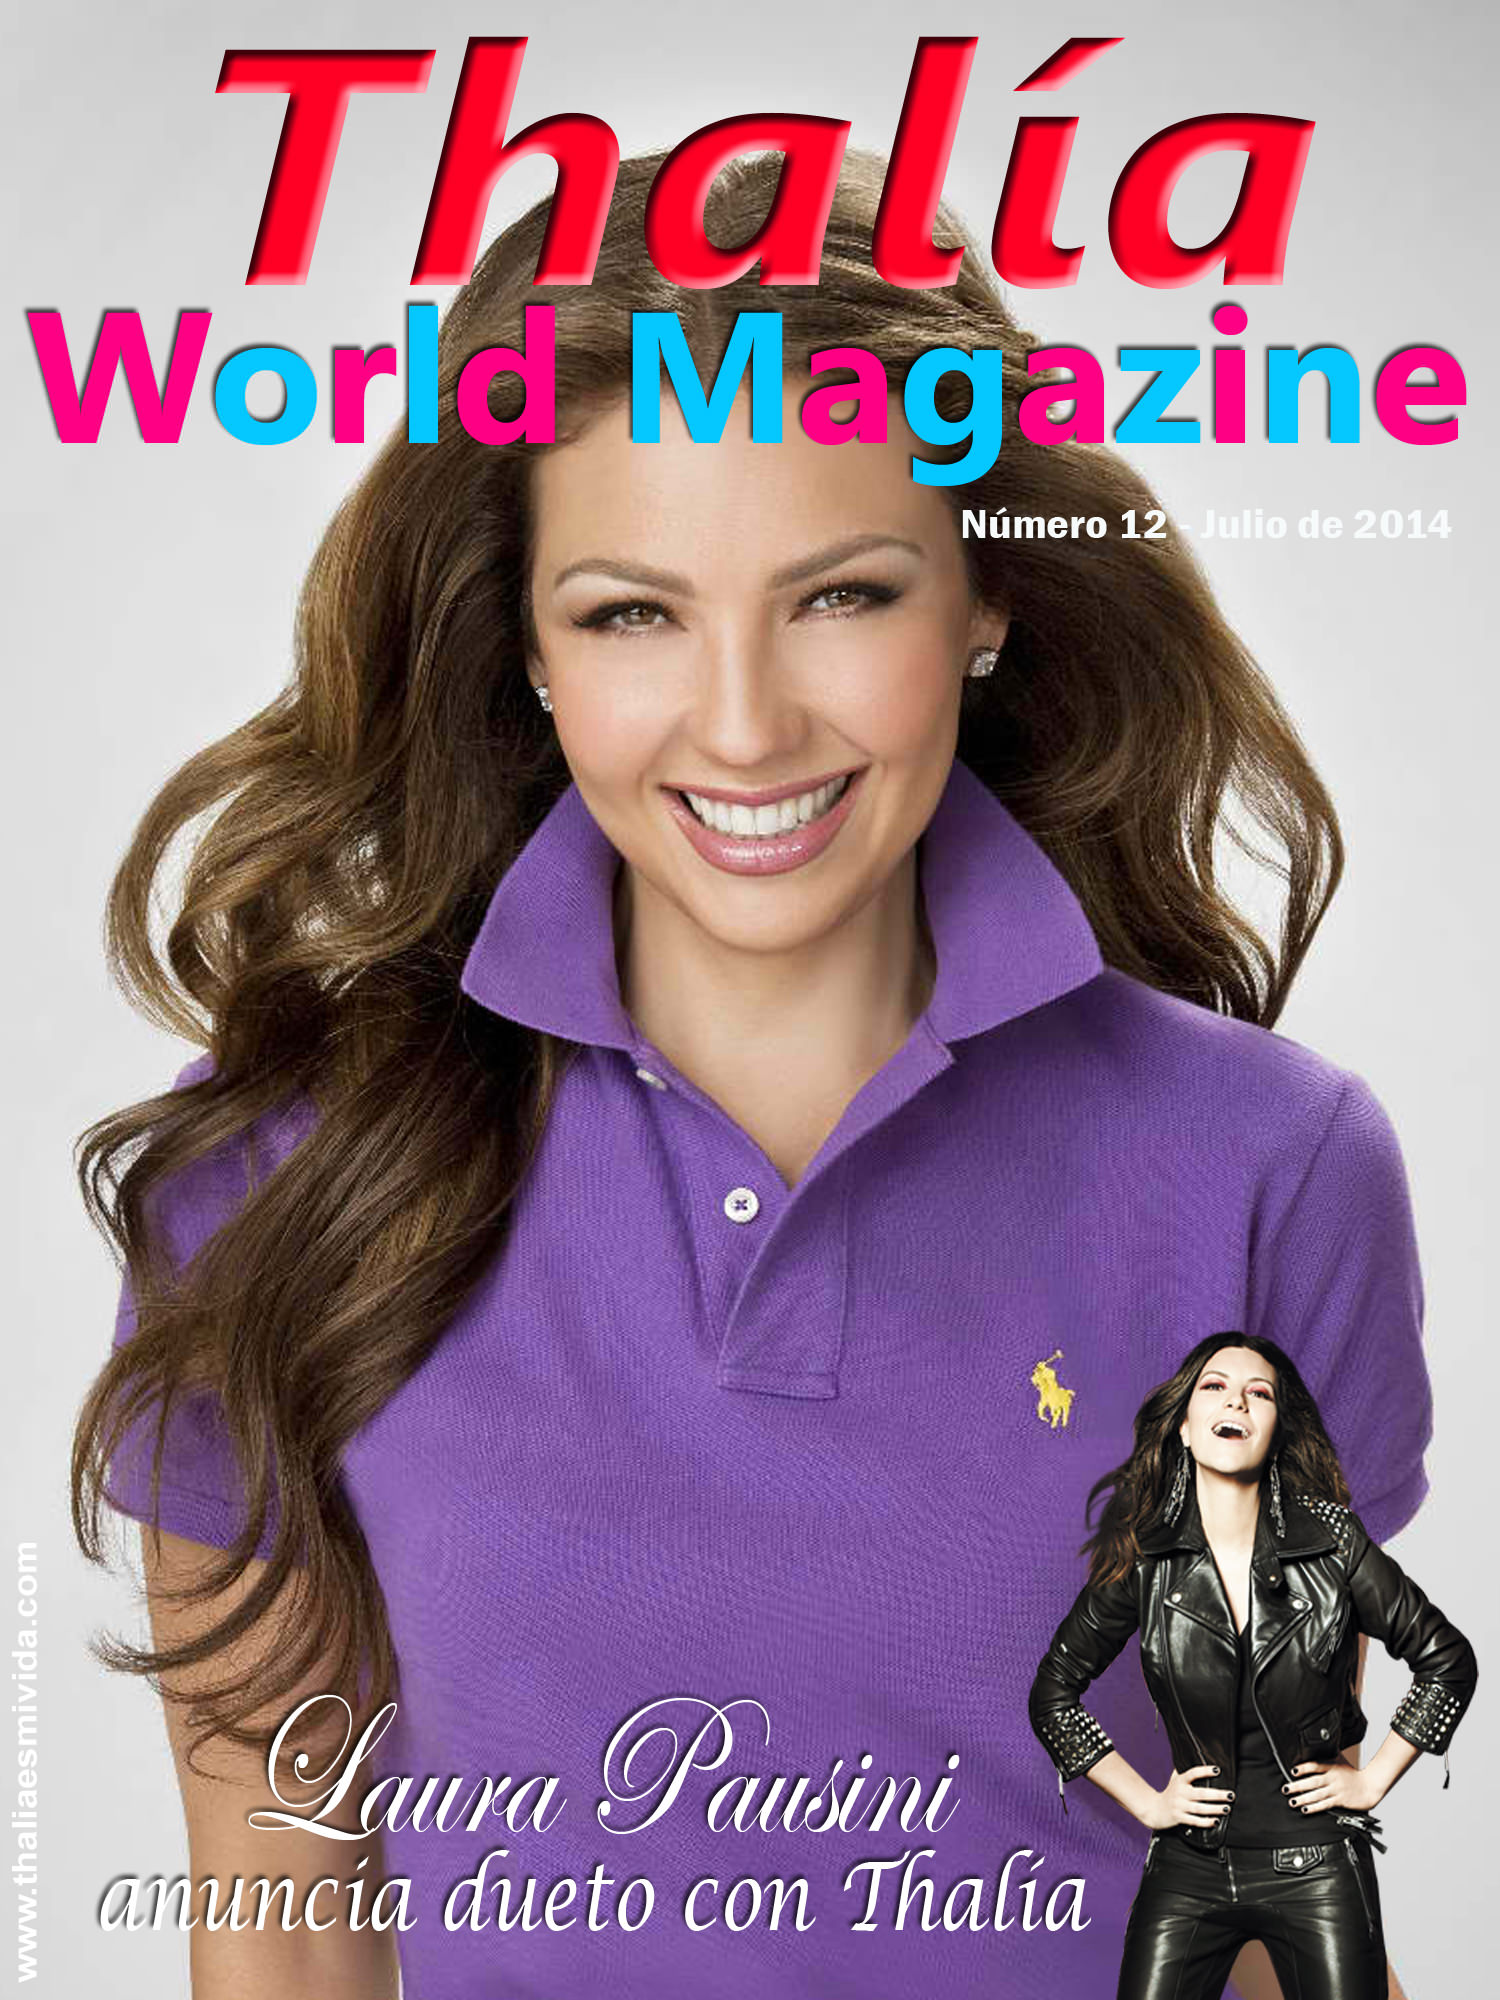 Thalia World Magazine 12